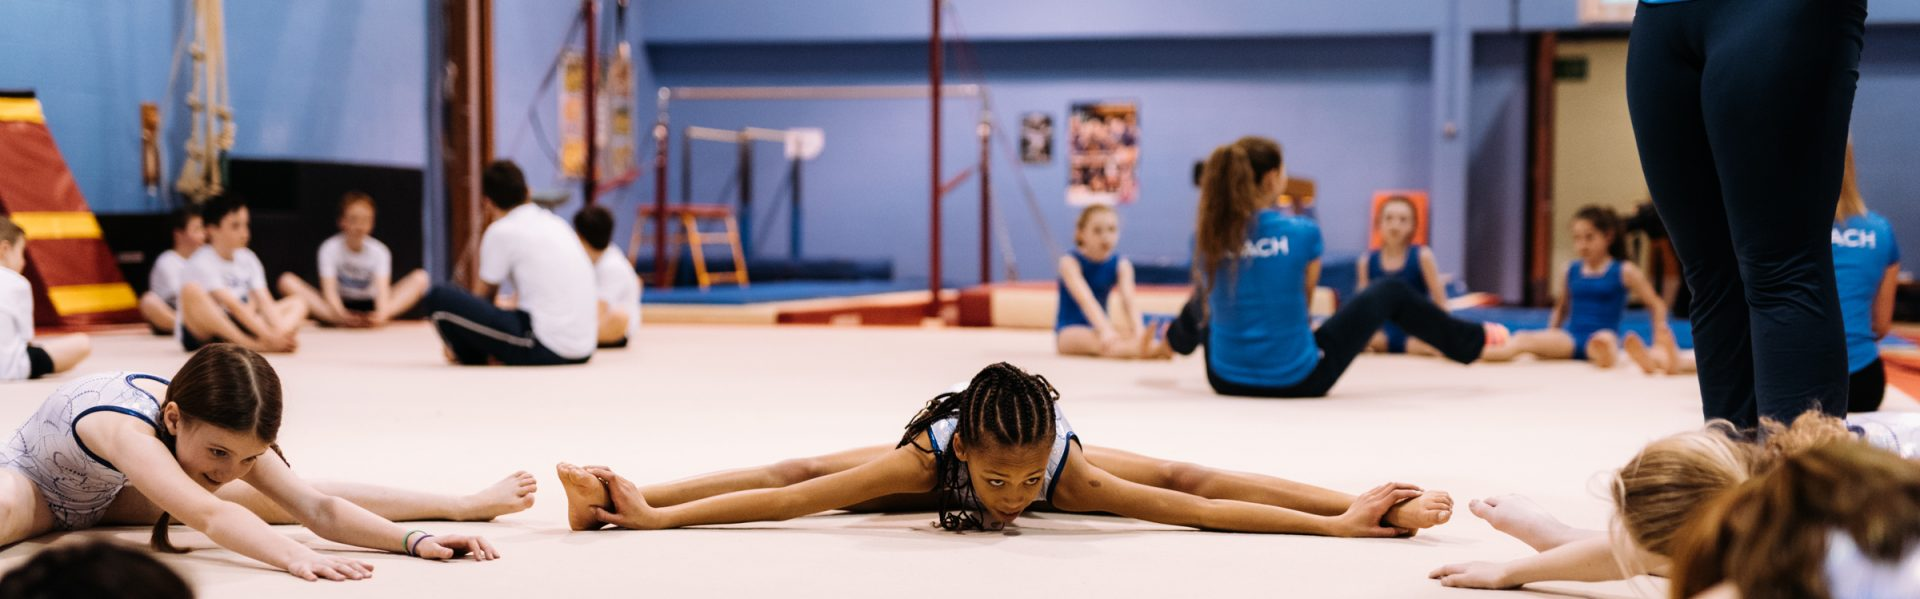 GymFun, a Newtownabbey and Derry City based gymnastics club